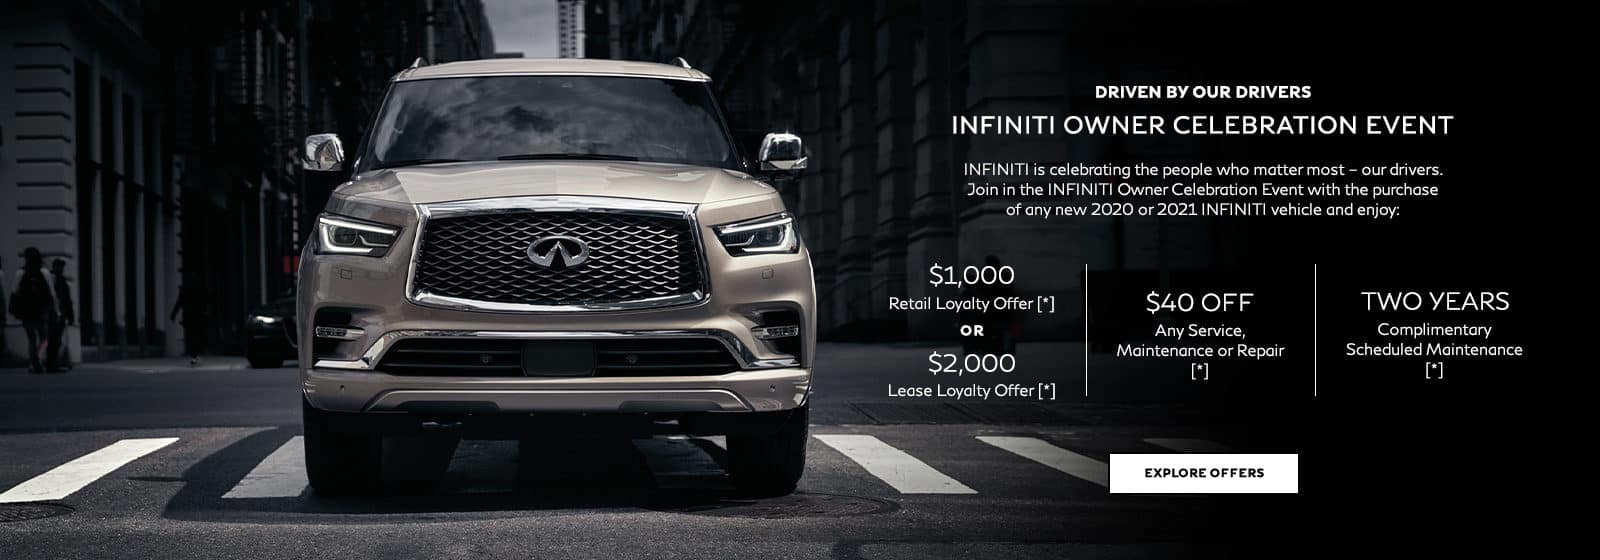 INFINITI Owner Celebration Event. INFINITI is celebrating the people who matter most – our drivers. Join in the INFINITI Owner Celebration Event with the purchase of any new 2020 or 2021 INFINITI vehicle and enjoy these offers: $1,000 Retail Loyalty Offer OR $2,000 Lease Loyalty Offer, $40 off any service, maintenance or repair OR 50% off oil and filter change complete with a multi-point inspection, plus 2 years complimentary scheduled maintenance.